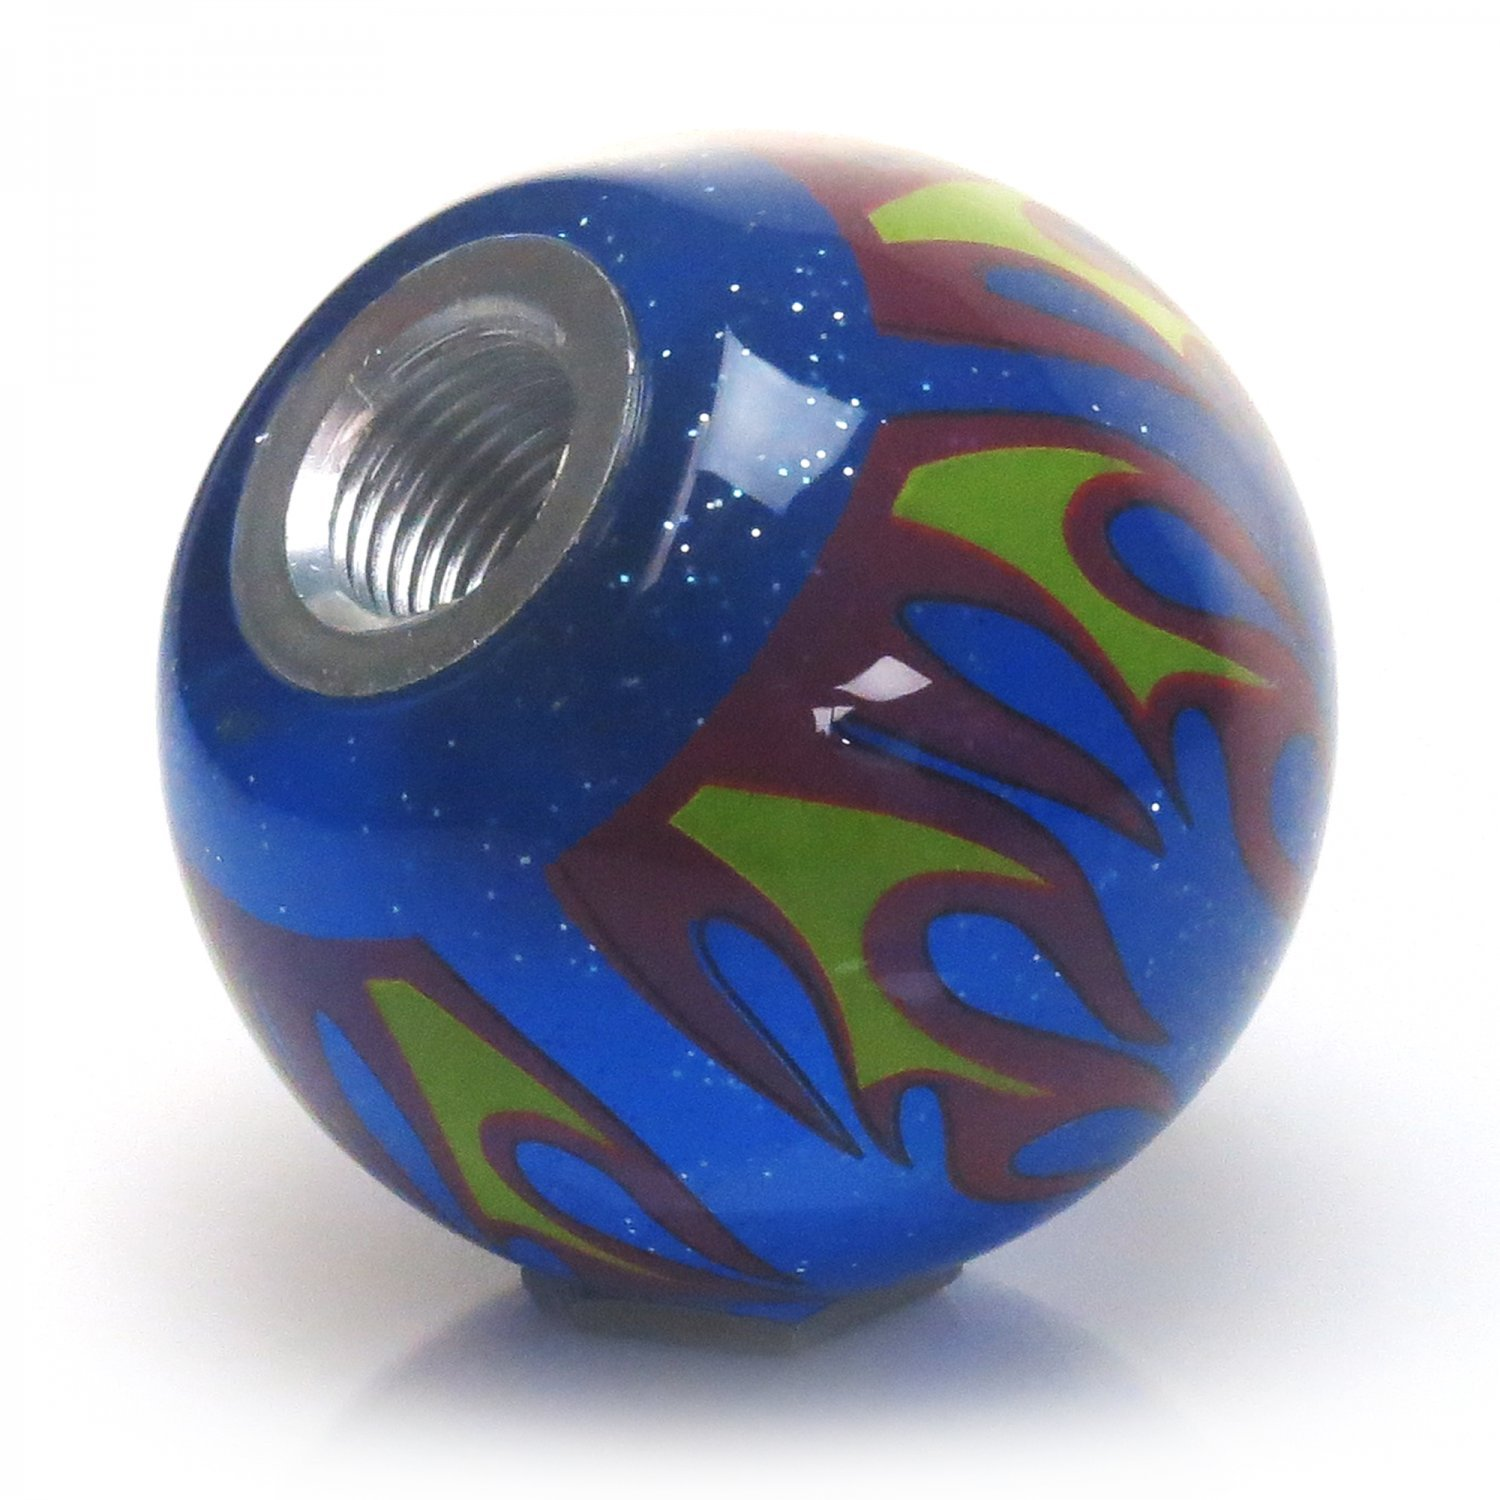 Green LOL American Shifter 245925 Blue Flame Metal Flake Shift Knob with M16 x 1.5 Insert